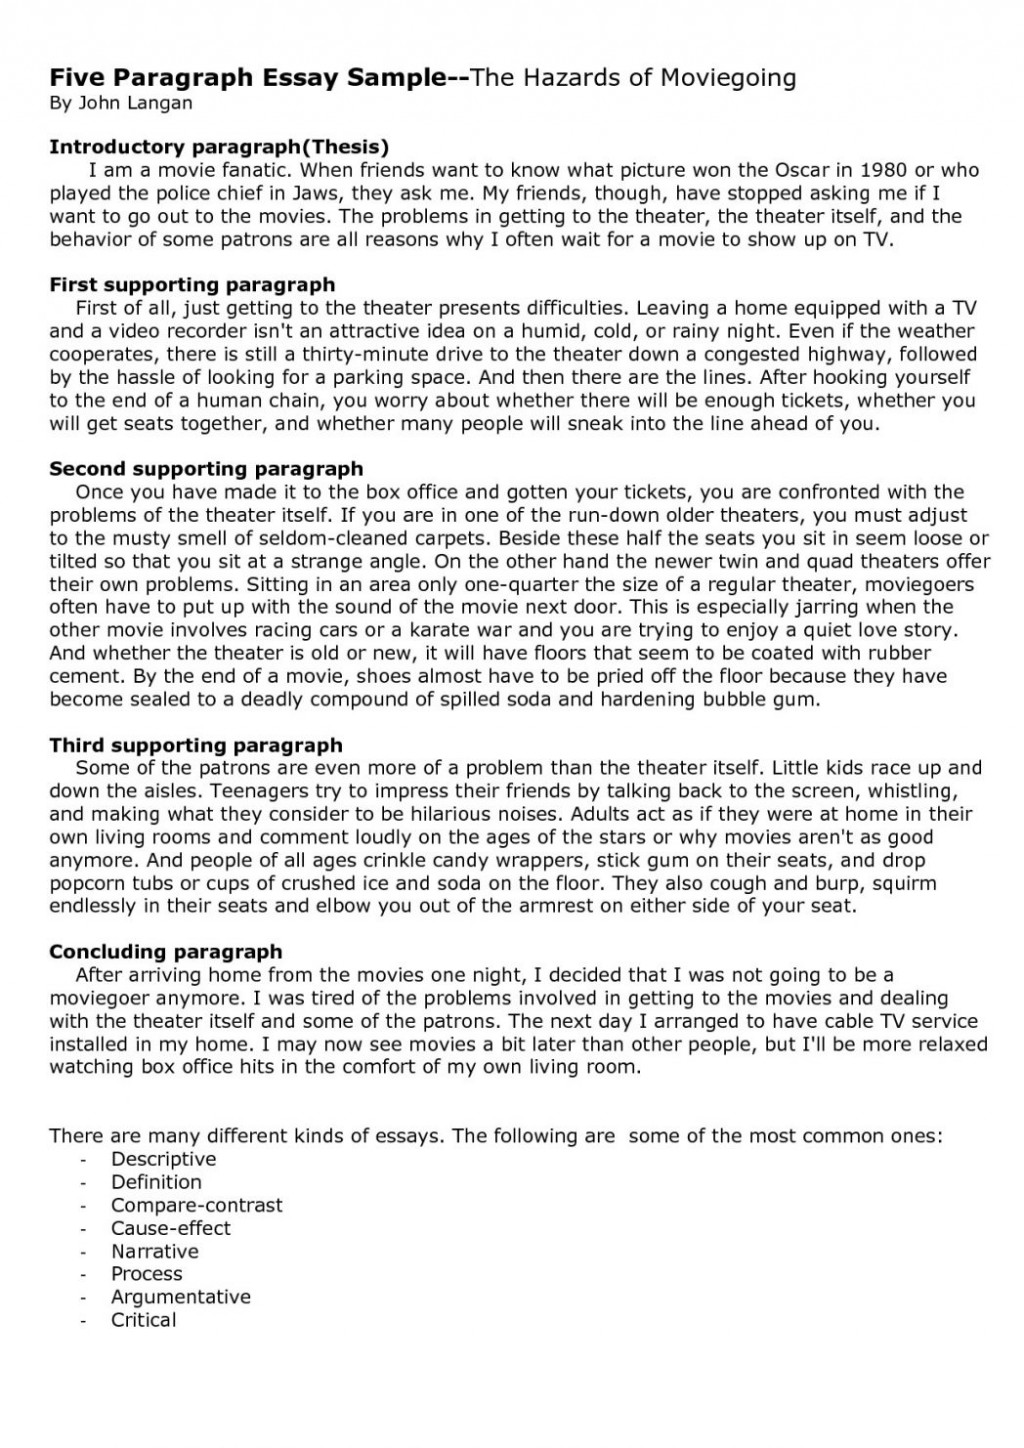 016 How To Essays Essay Example Examples Of Introductions New Intro Paragraph Write An Introduction For Opi Informative Start Analytical Opinion About Book Pdf Yourself Excellent Expository 4th Grade Make Longer With Words Large